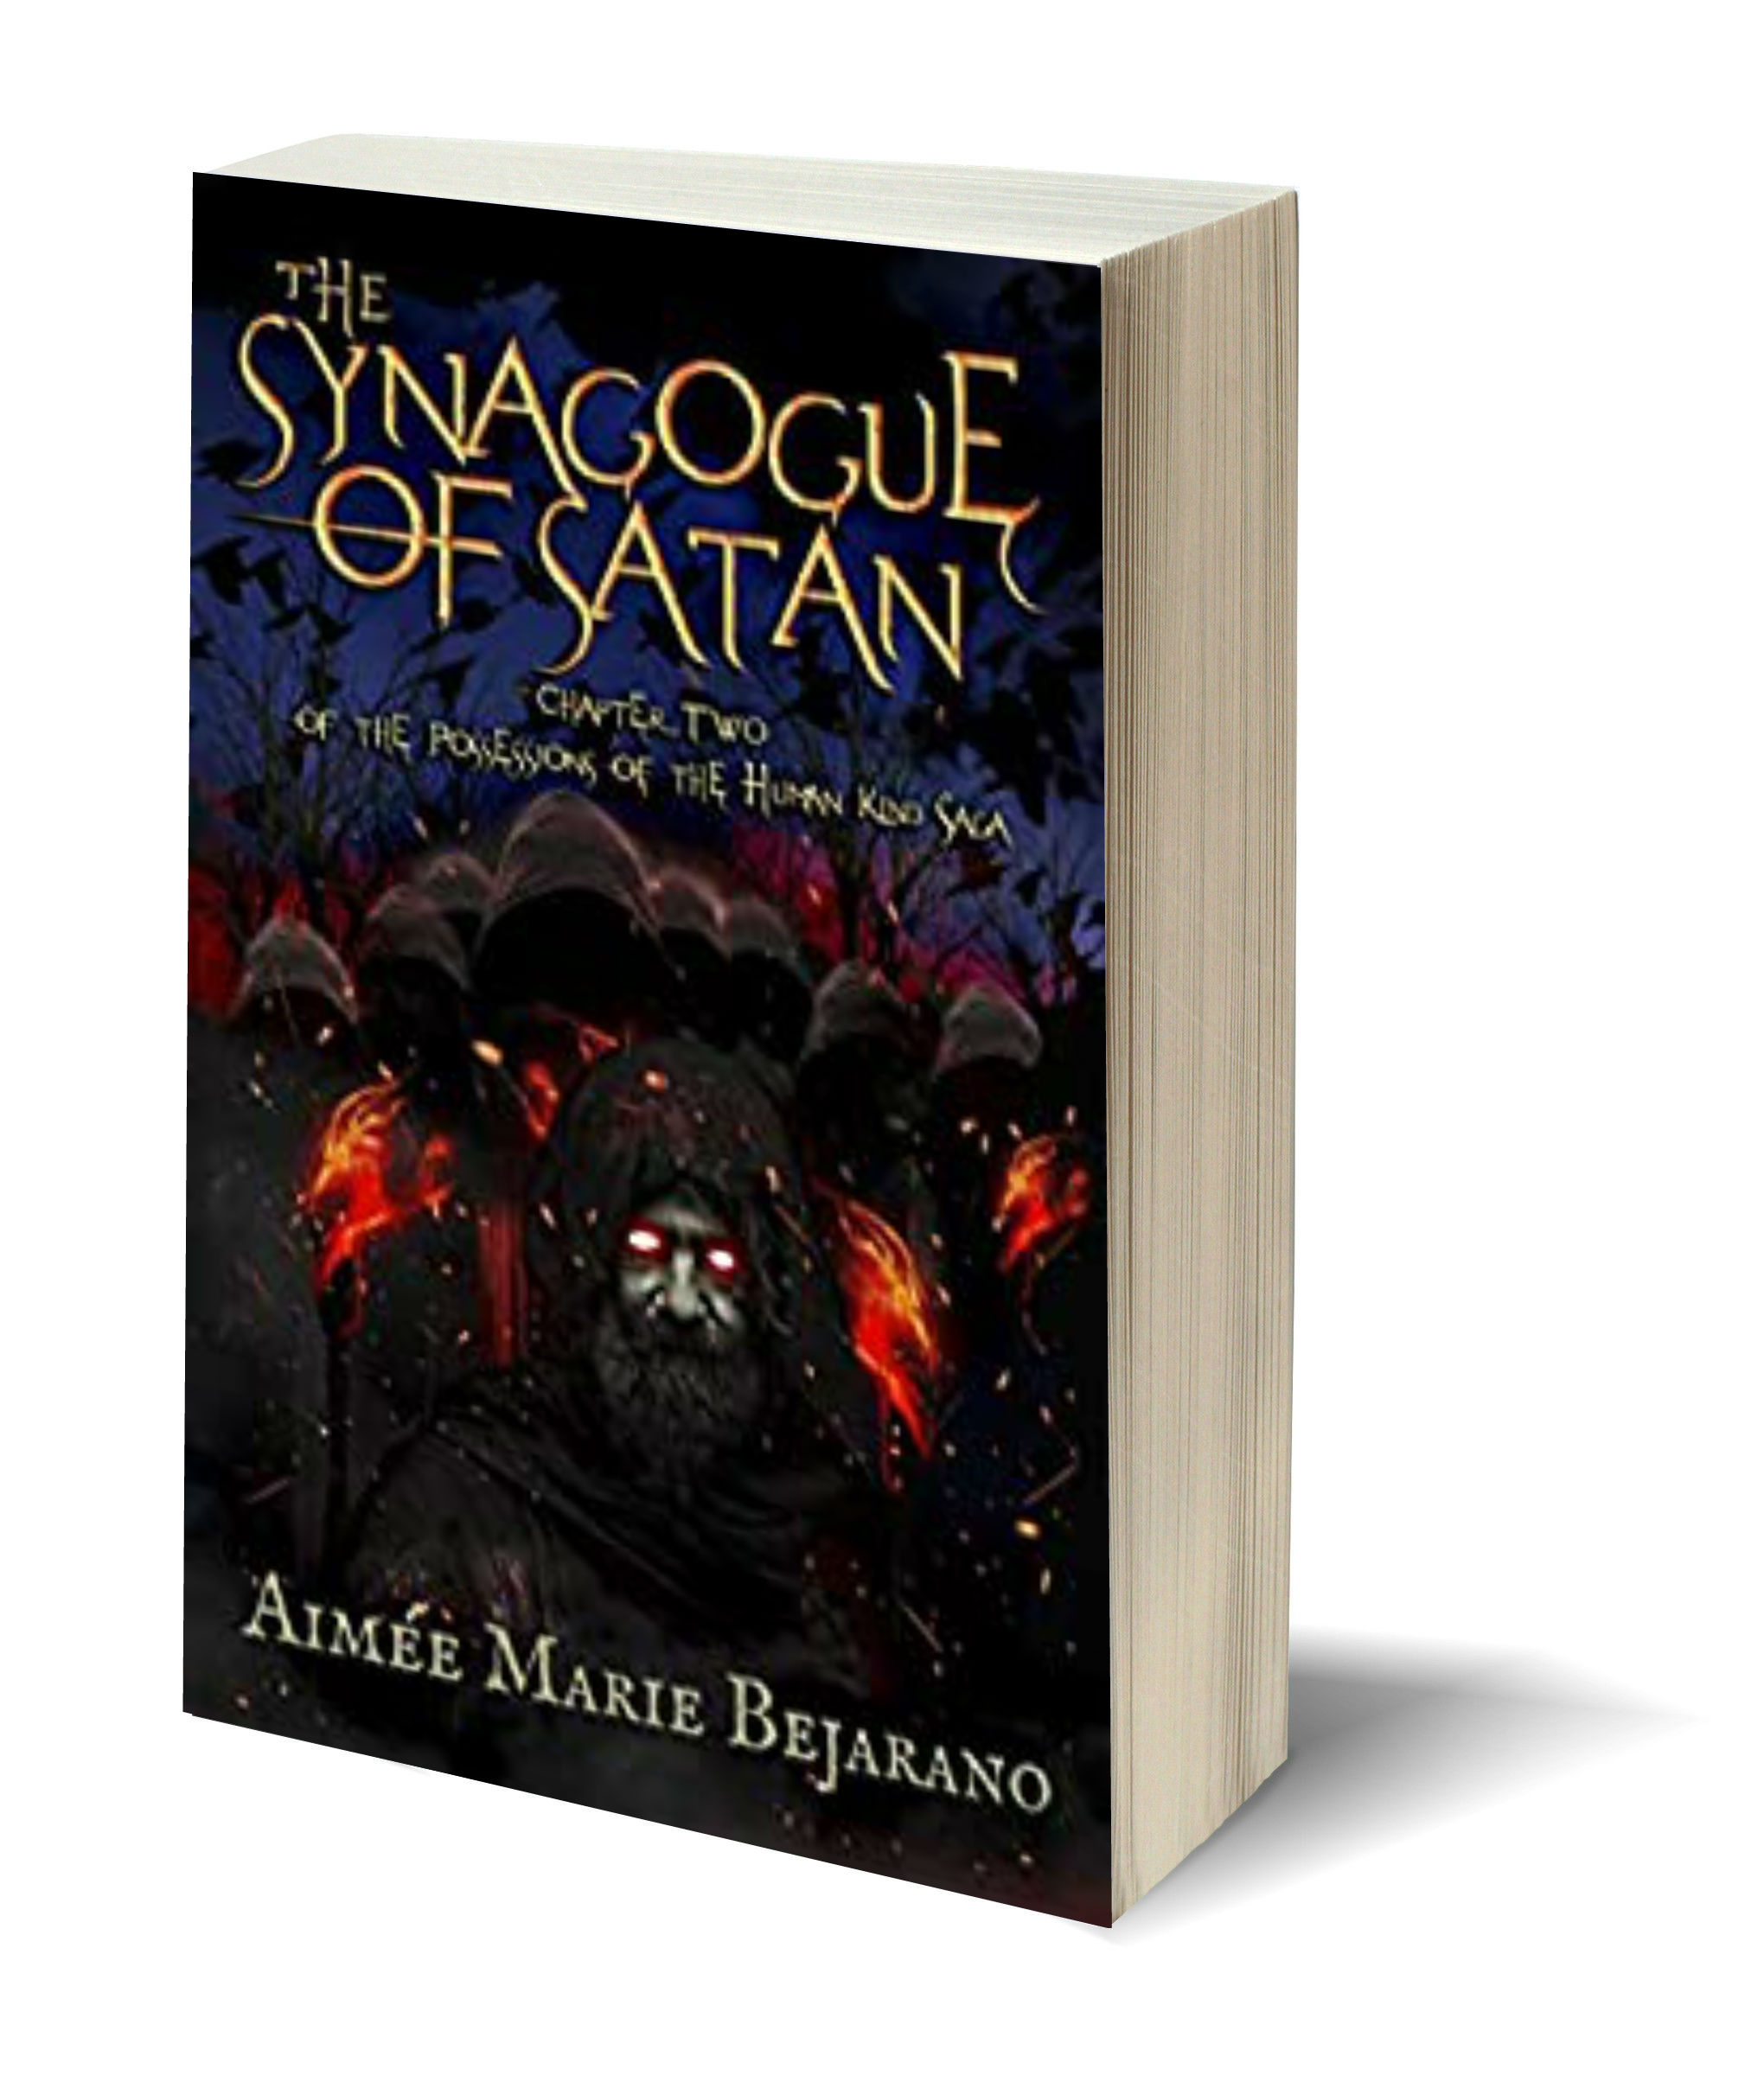 The Synagogue of Satan 3D-Book-Template